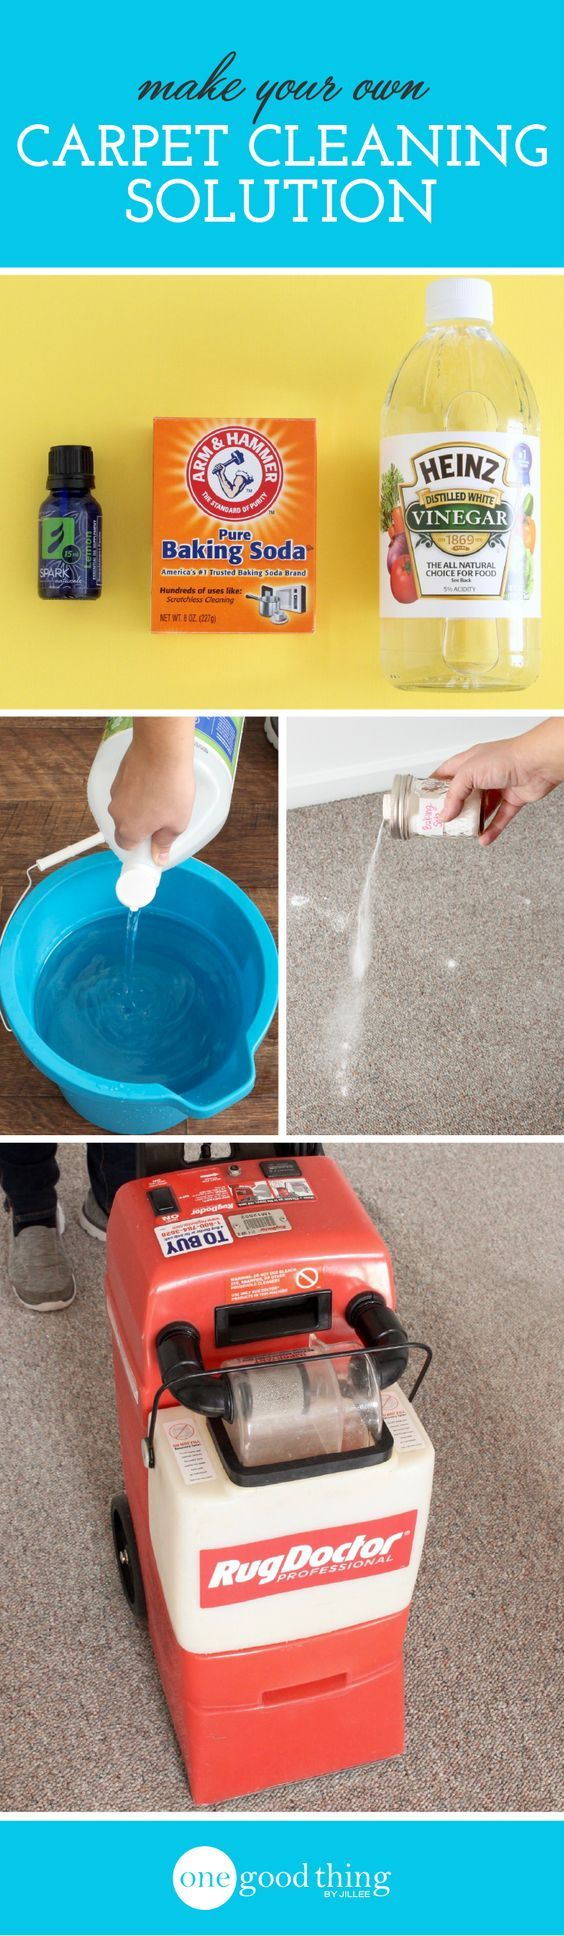 Whether you own or rent your carpet cleaning machine, this all-natural homemade carpet cleaning solution will ensure that your carpets get a deep clean.